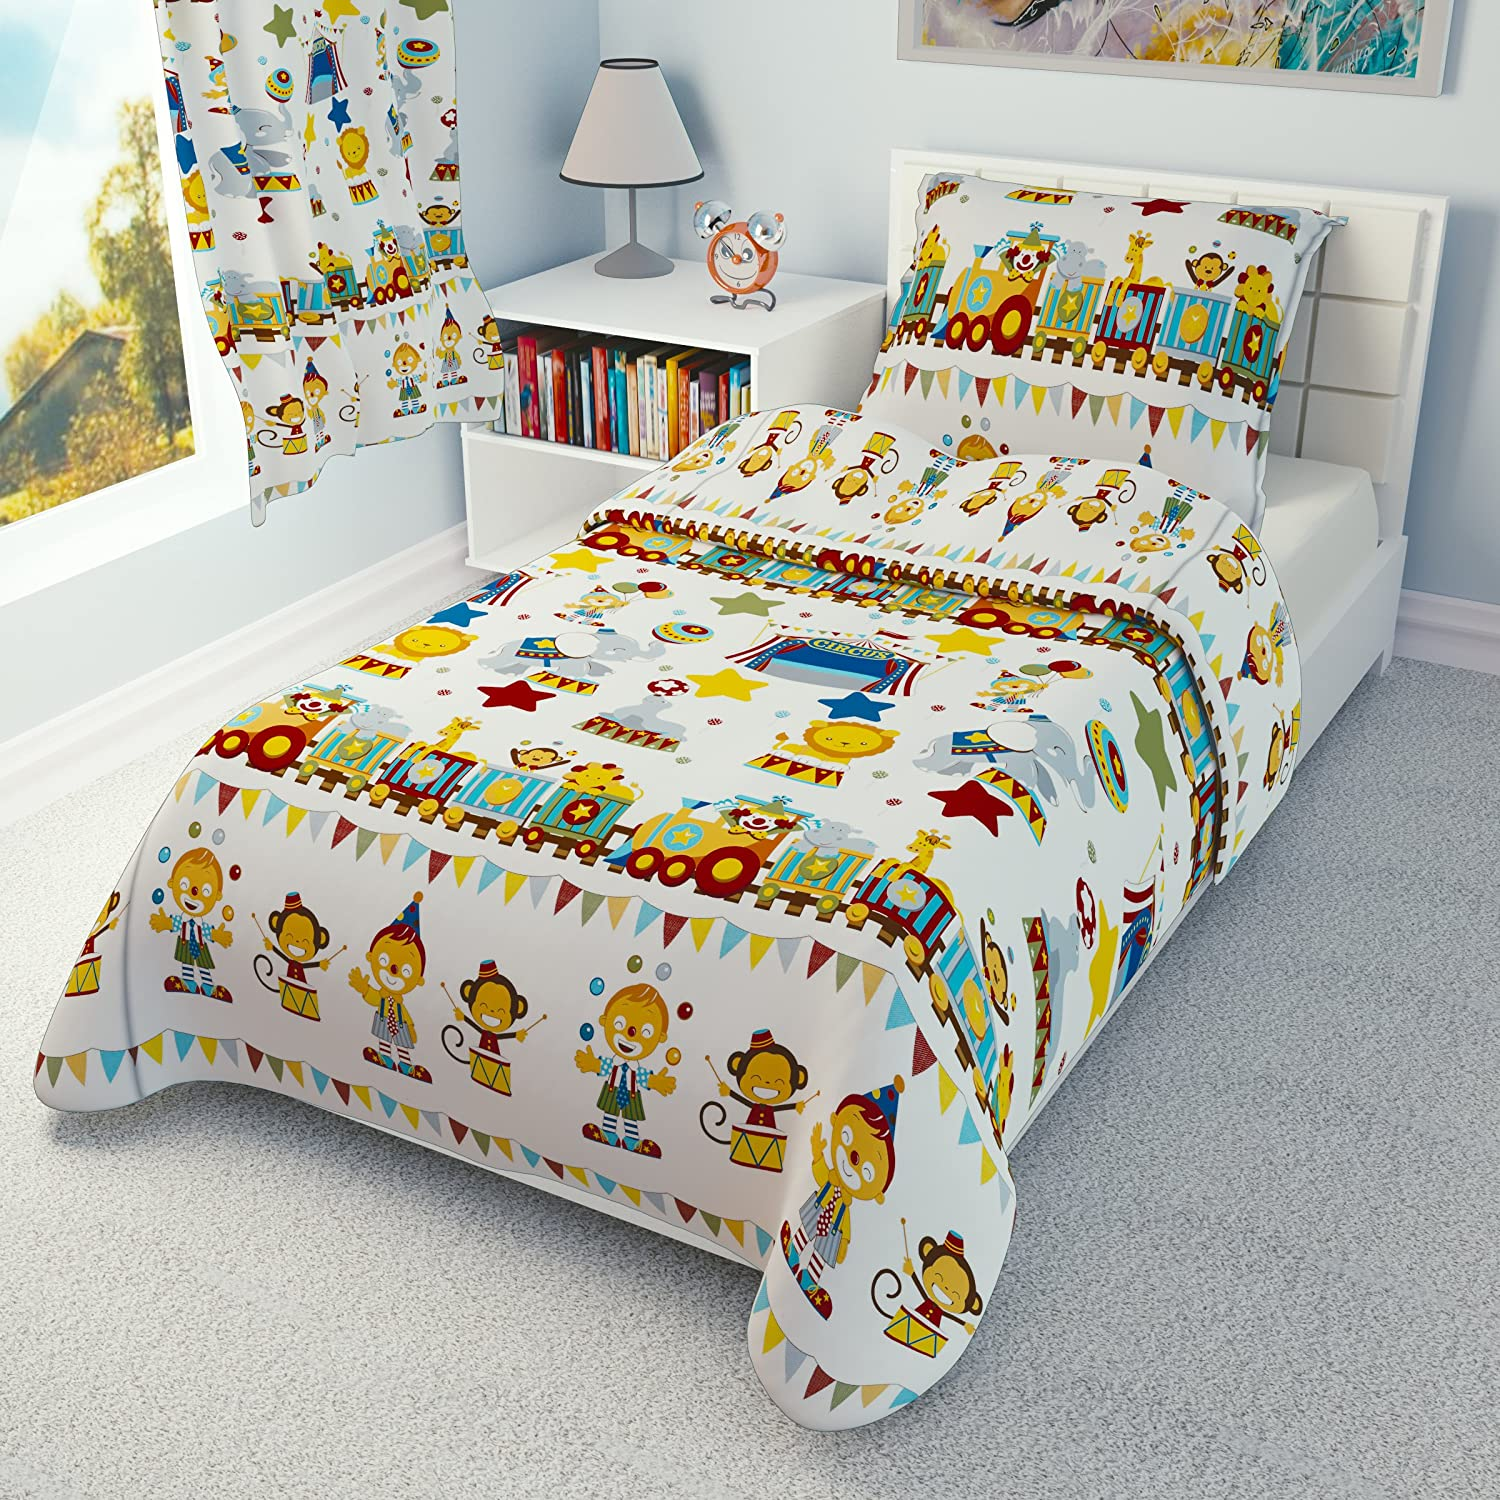 Babies Island IKEA Cot Bedding Duvet Cover Pillowcase 110 x 125 cm - many designs available (Red Sailor) Babies-Island